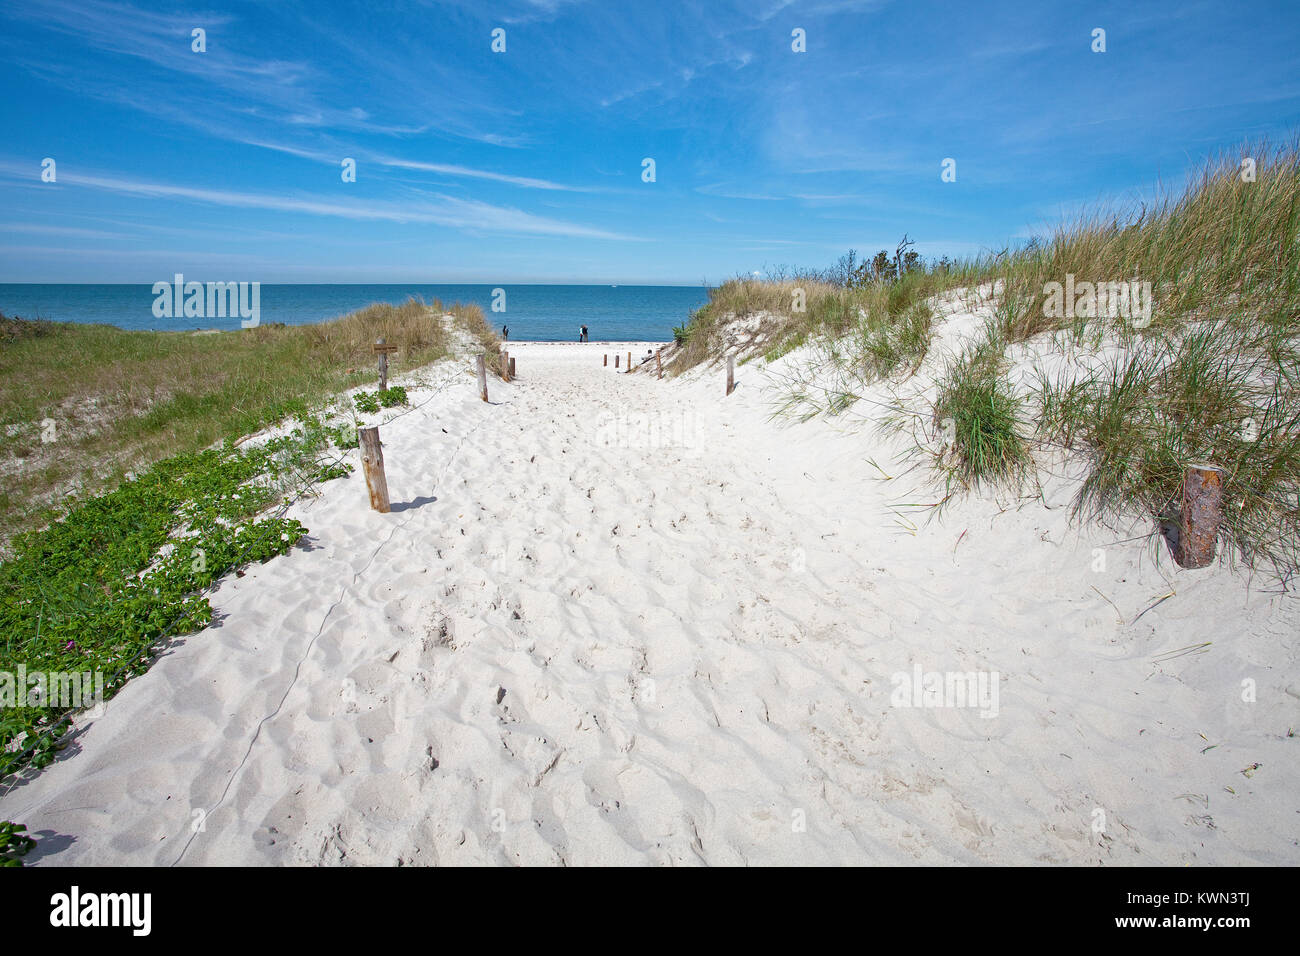 Beach access to the west beach at 'Darsser Ort', Prerow, Fishland, Mecklenburg-Western Pomerania, Baltic - Stock Image